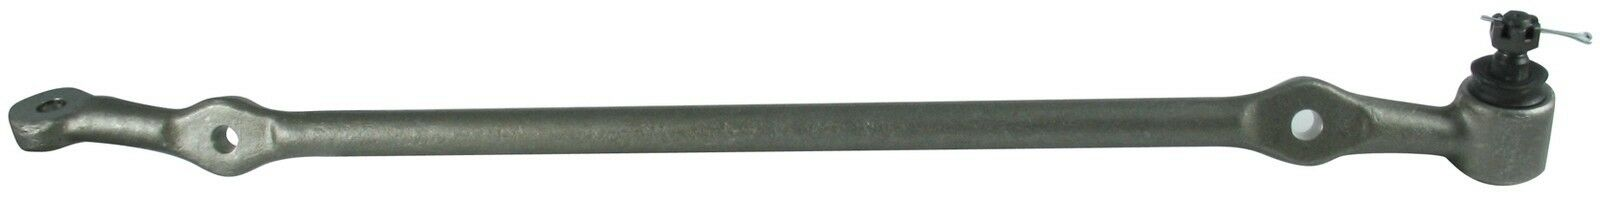 Borgeson 990050 Drag Link Fits 65-66 Mustang